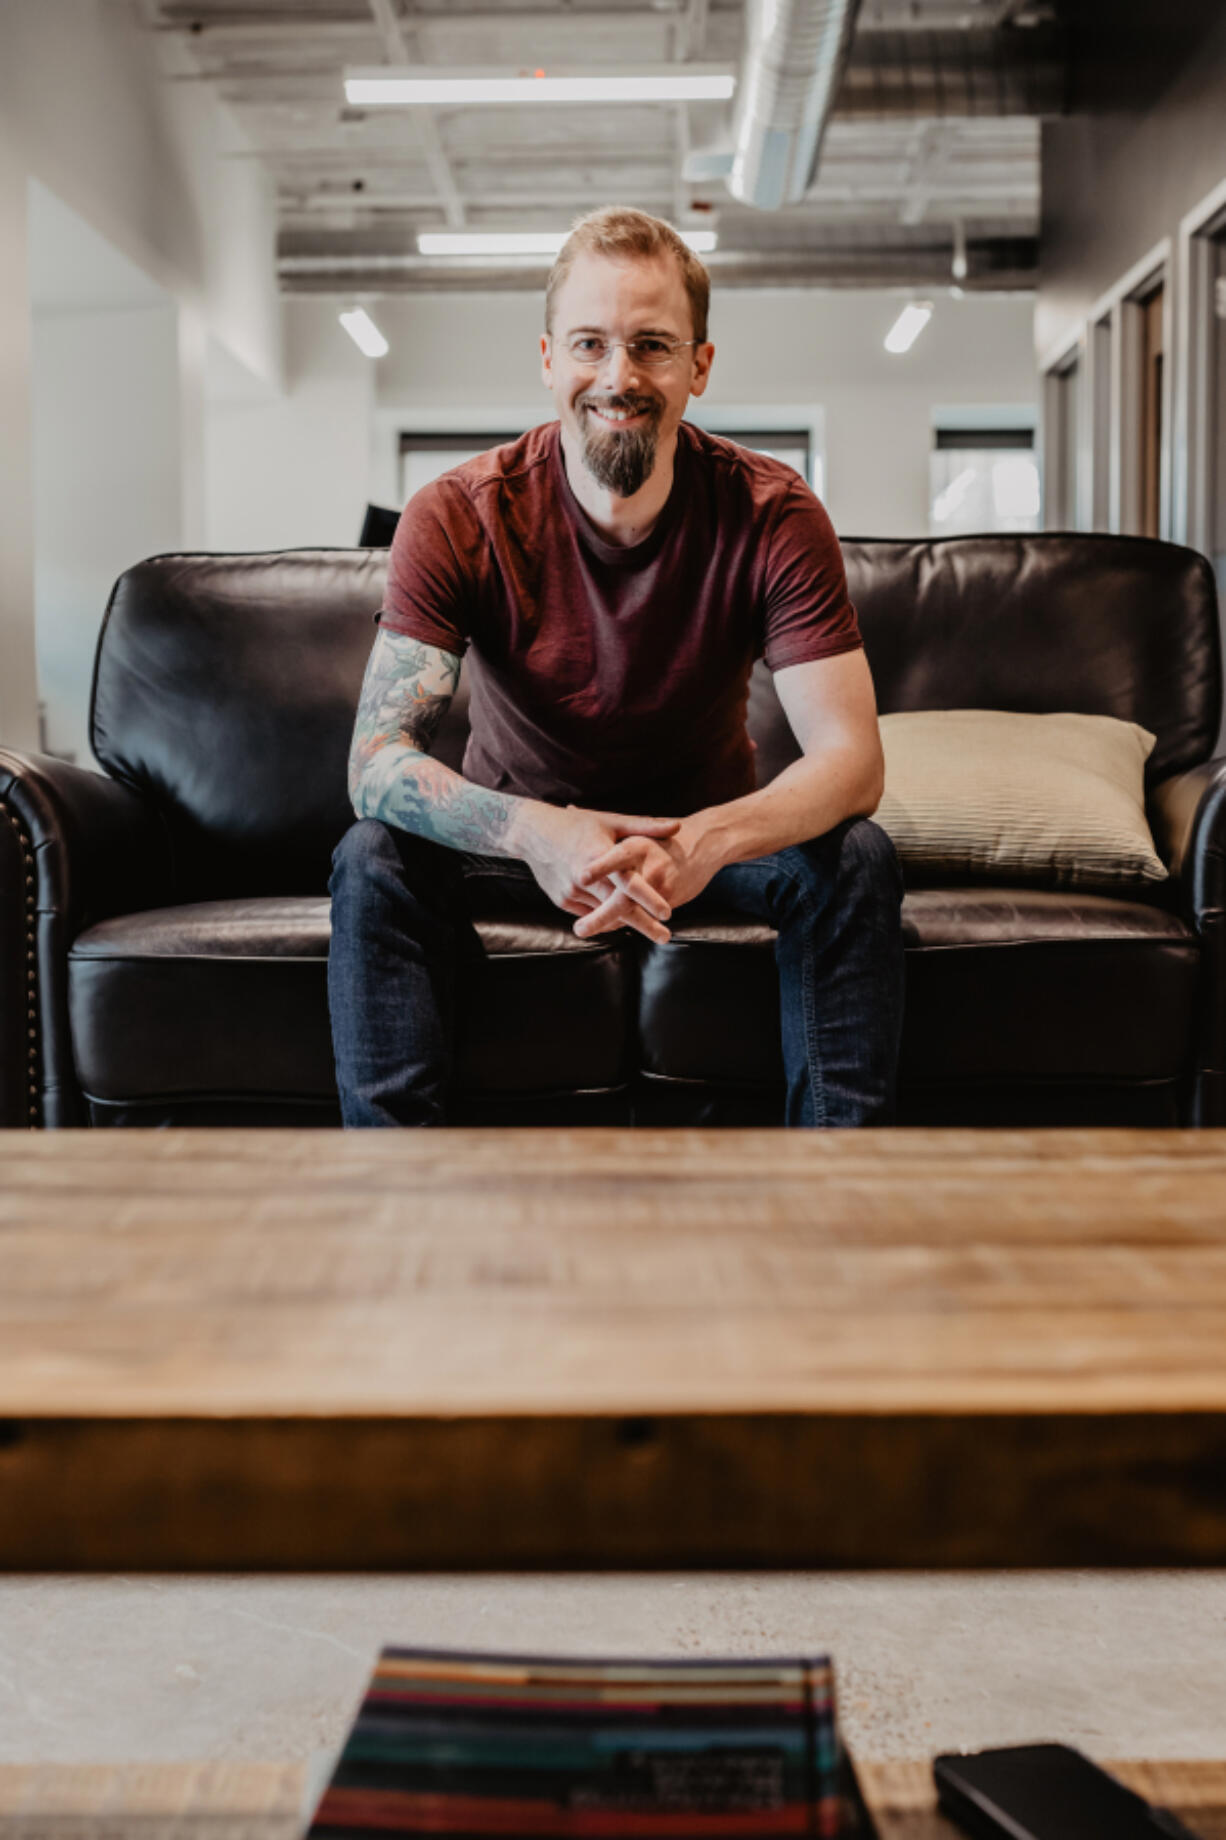 """Don Elliot, owner and CEO of Gravitate, is seeing growth in the Vancouver-based digital marketing company. """"We've had a huge uptick in business,"""" Elliot said. """"We're outperforming 2019 by a lot."""